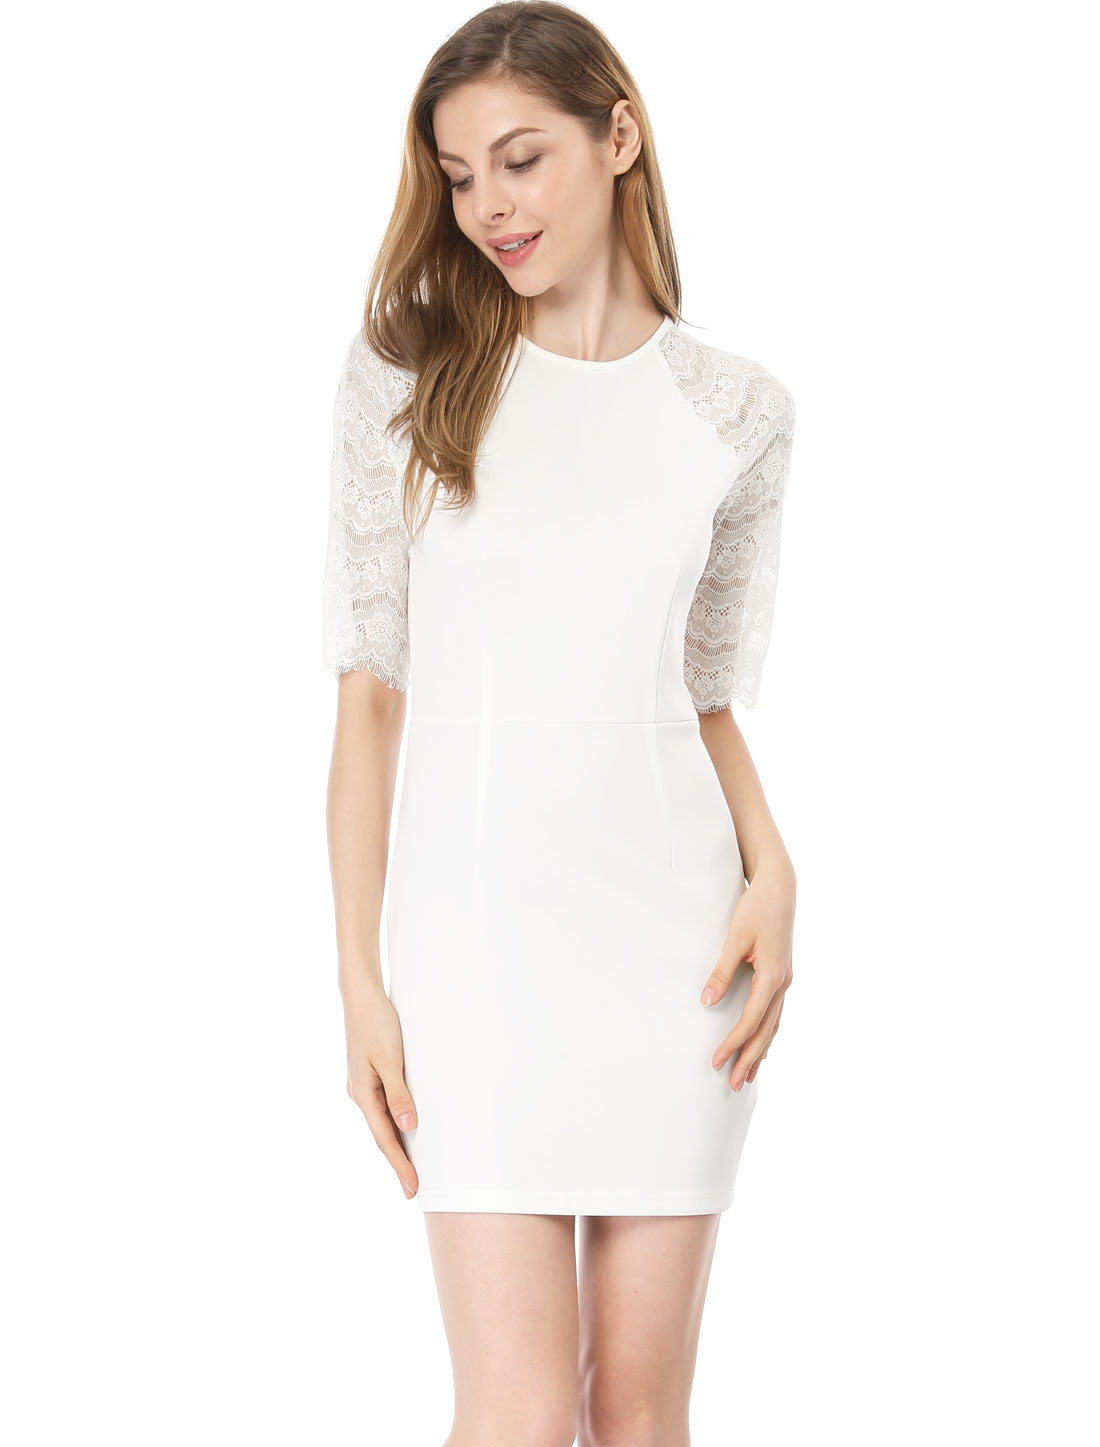 Ladies Round Neck Elbow-length Sleeves Lace Bodycon Dress White S